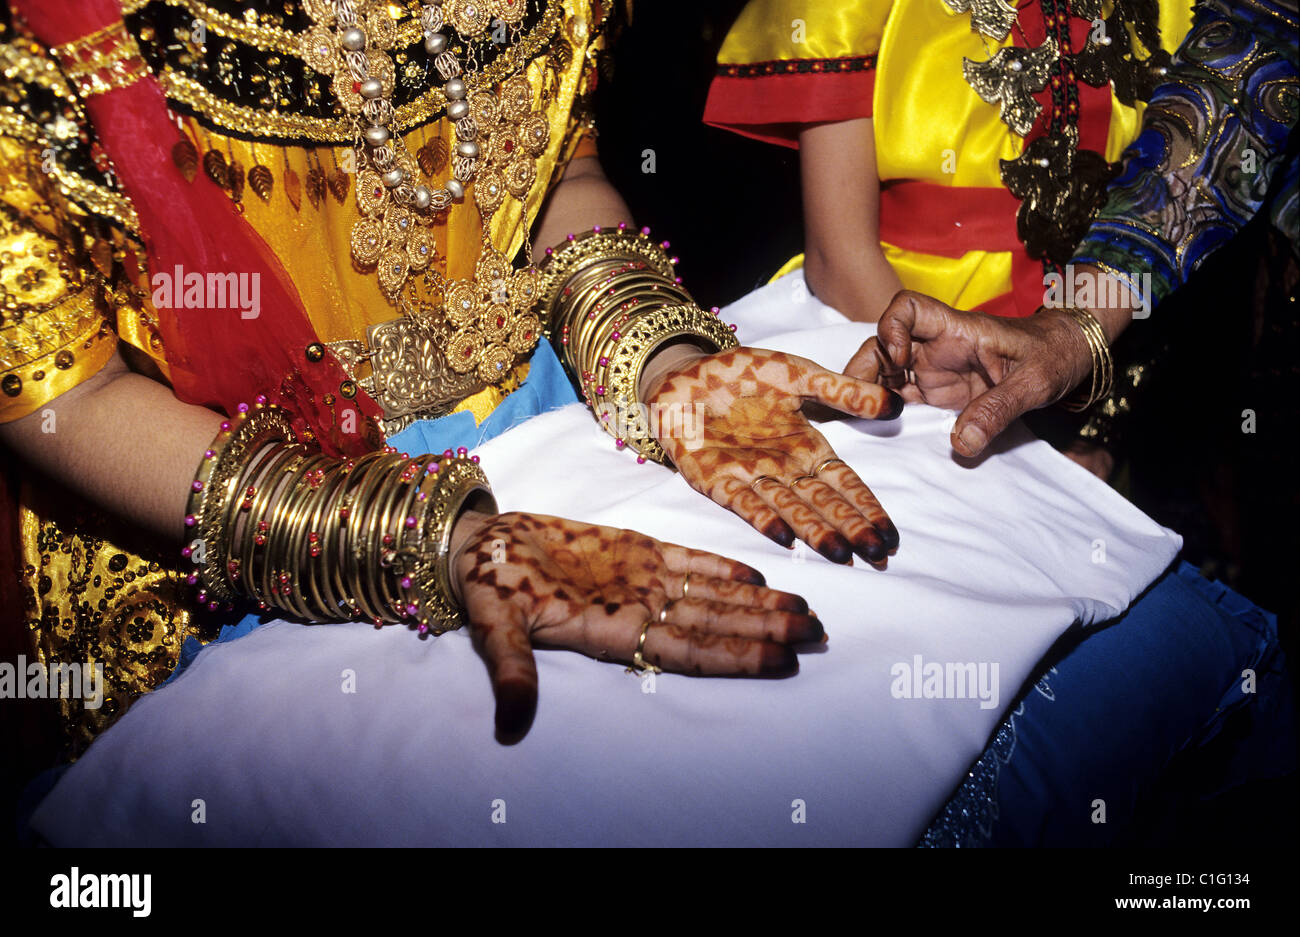 Indonesia, Sulawesi, Palu, Moslem wedding, Hands painted in the henna - Stock Image